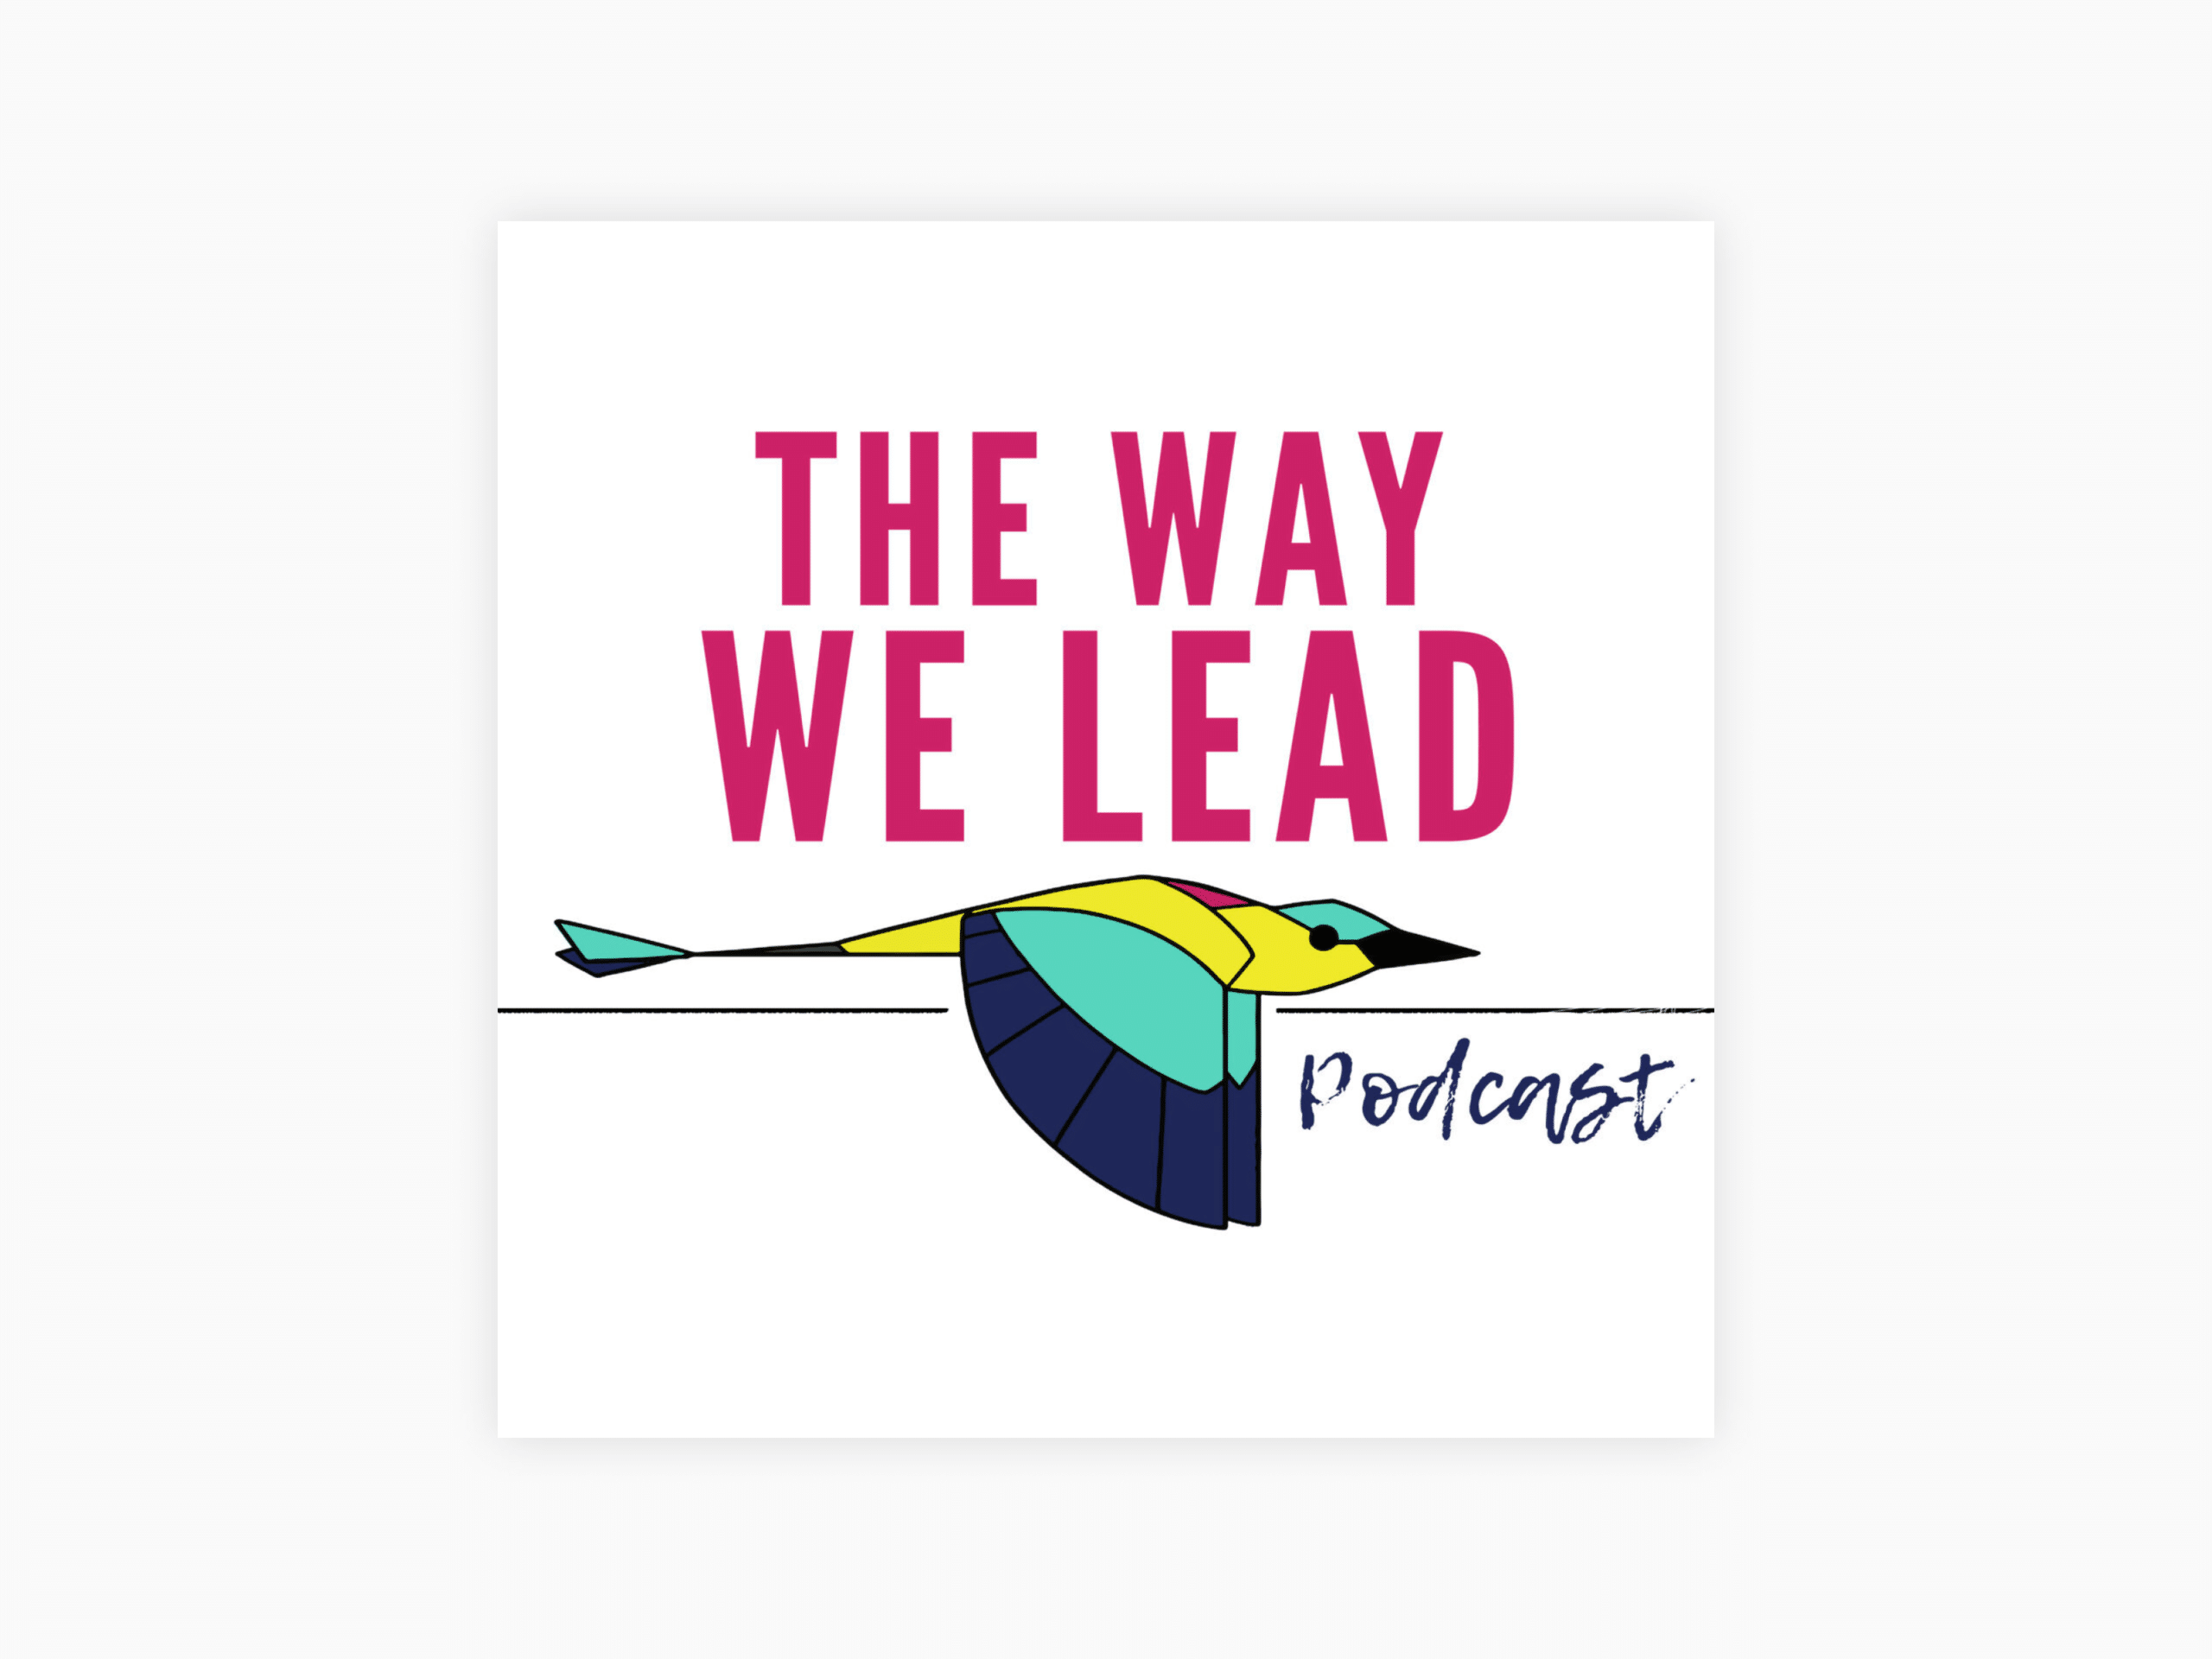 Cover art for the way we lead